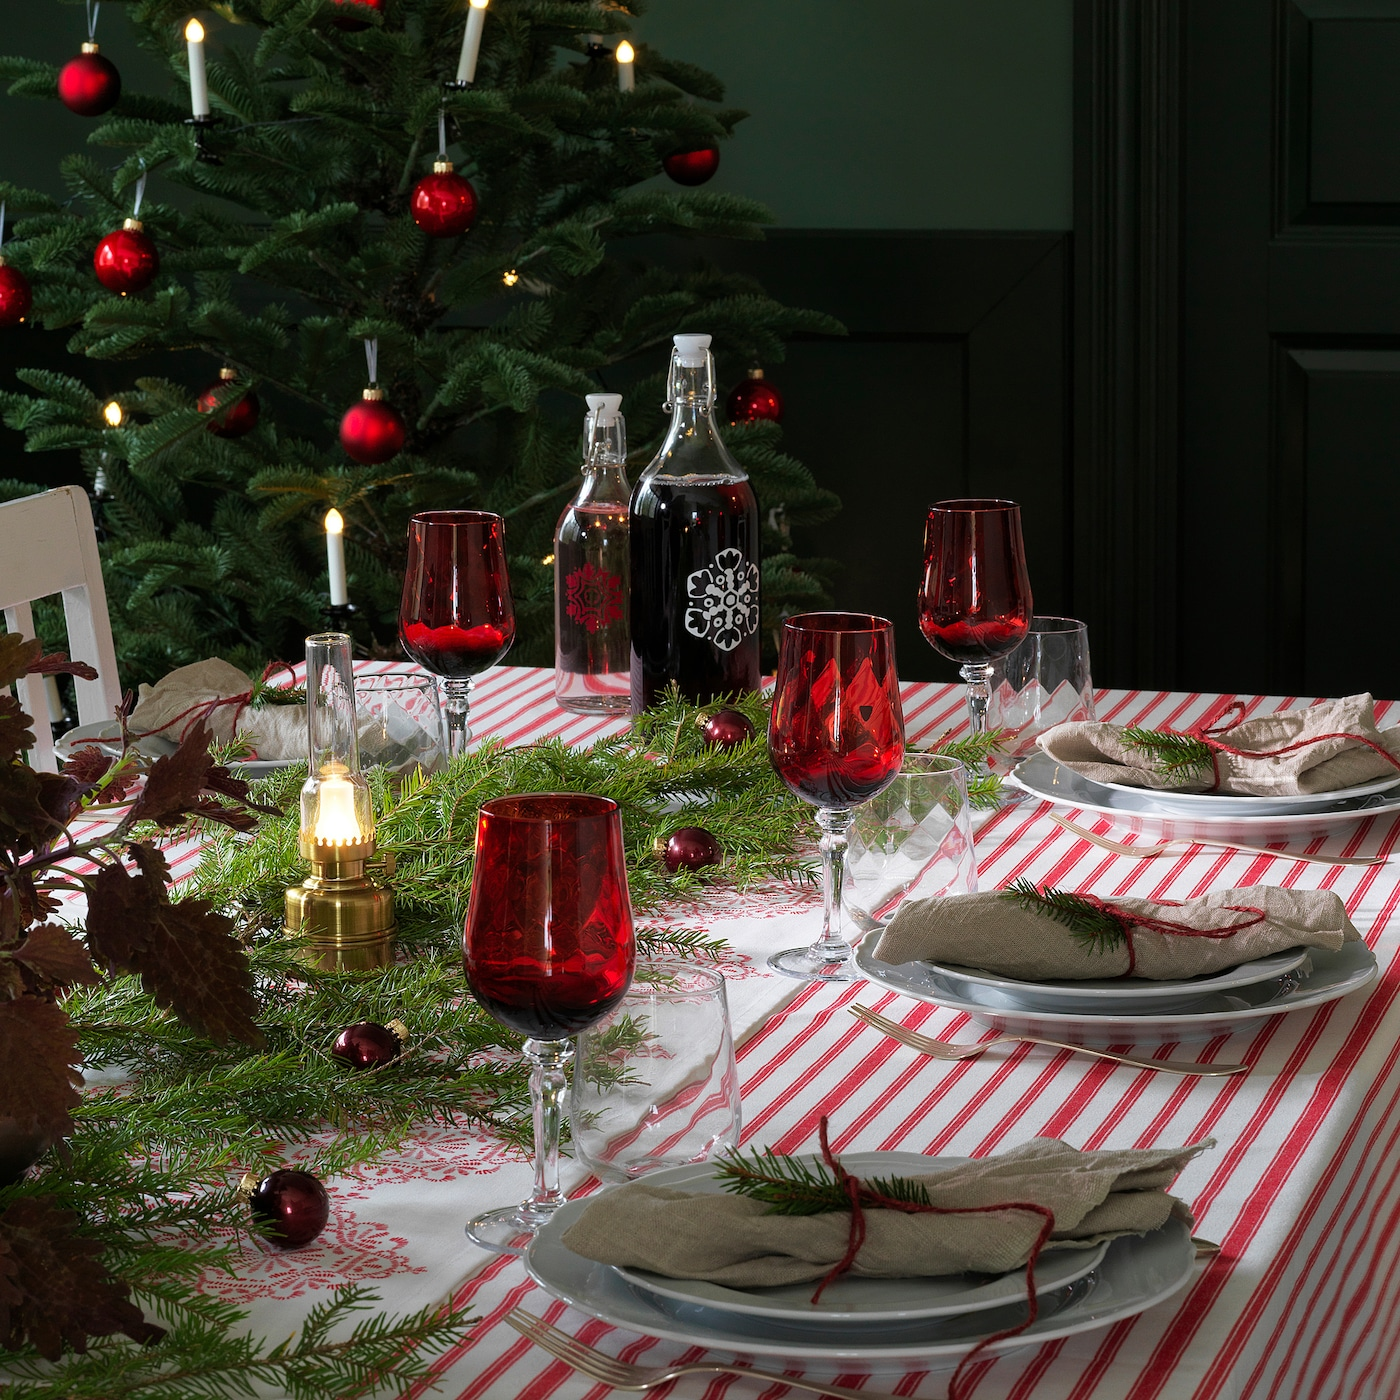 Vinter 2020 Tablecloth Striped Red White 145x240 Cm Ikea